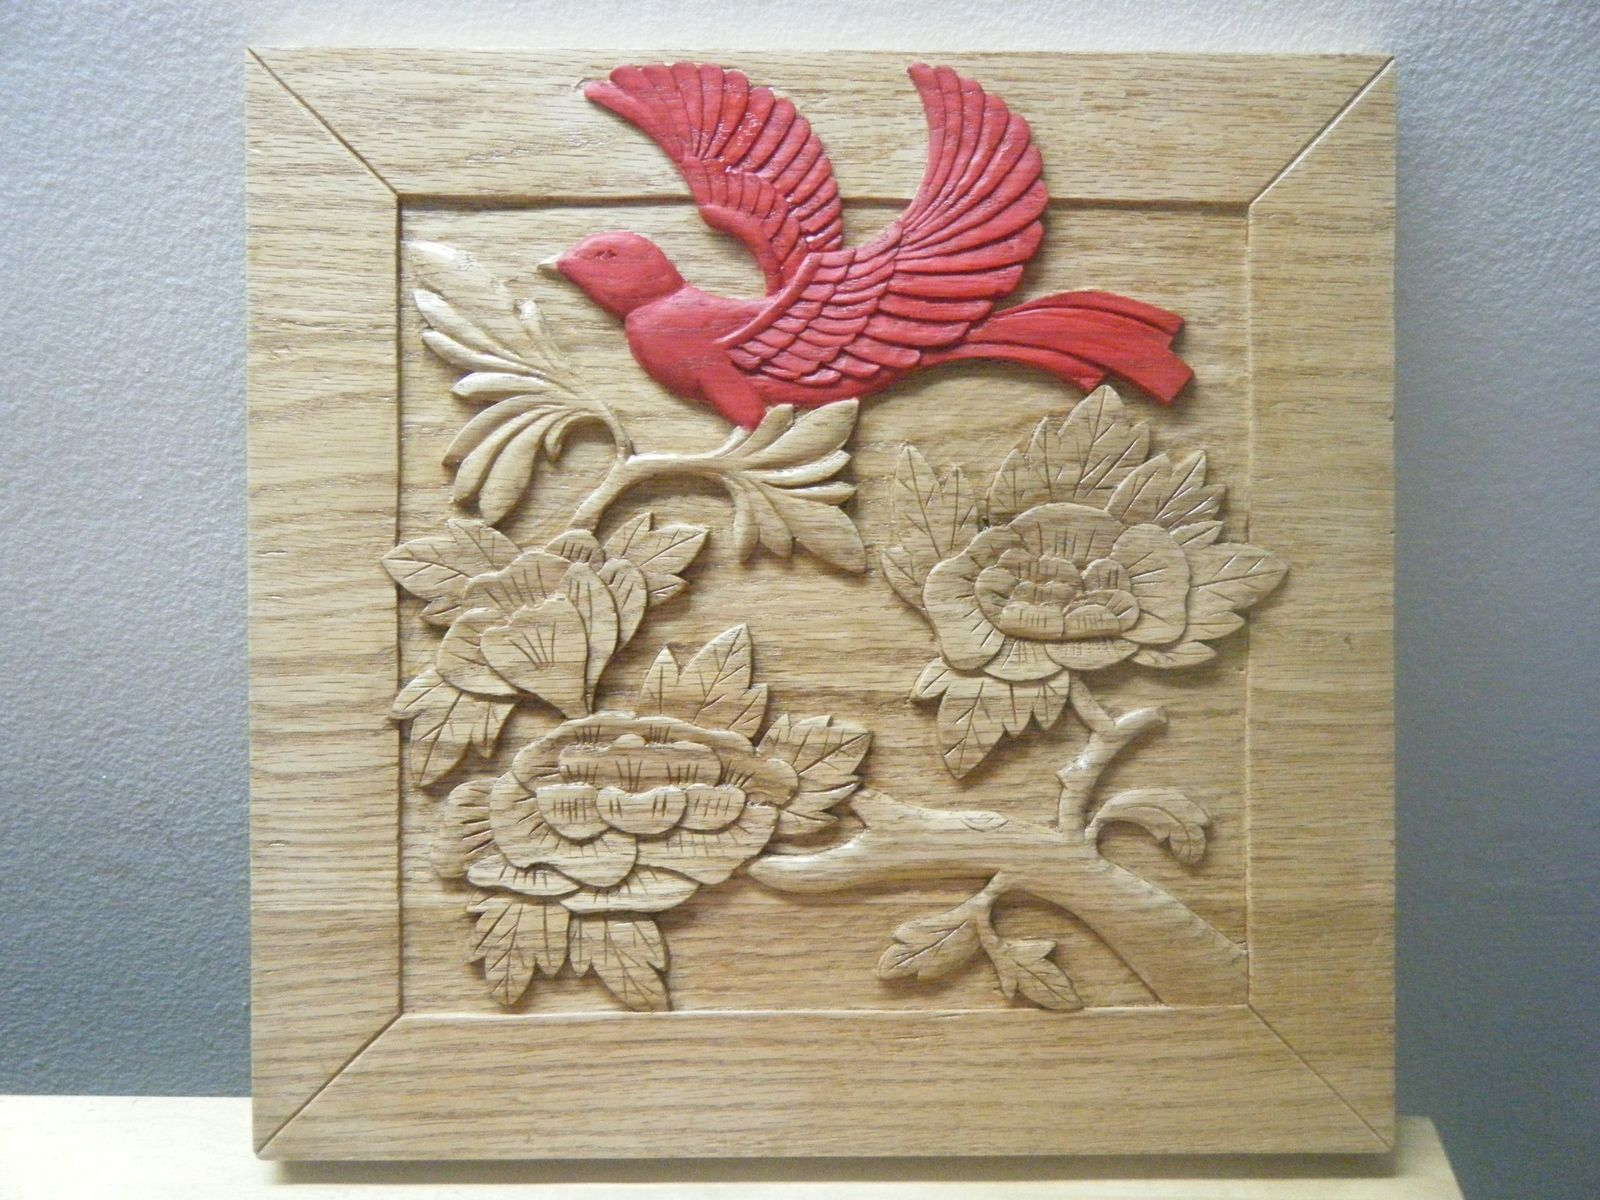 Hand made red bird relief carving by ehandcarved